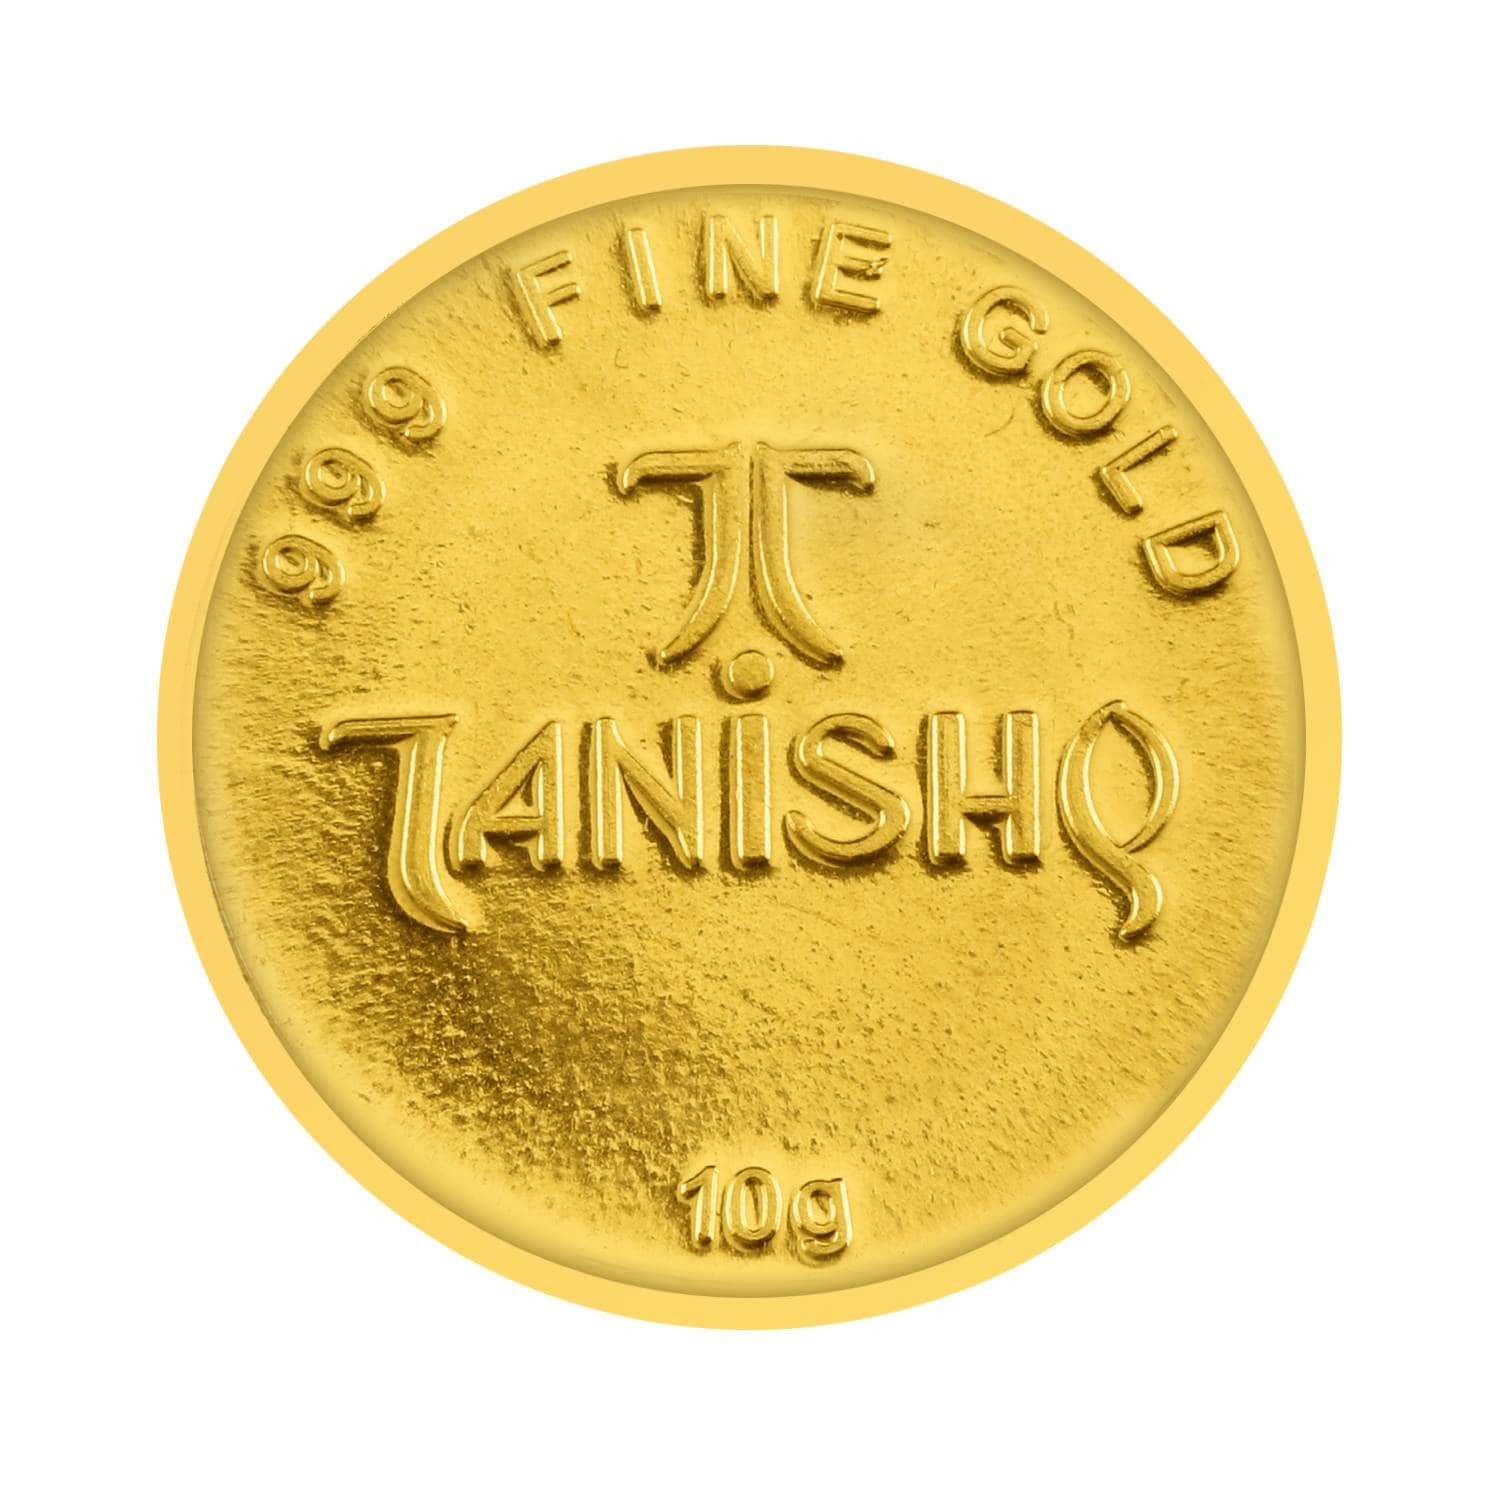 Tanishq Gold Coins: Buy Gold Coins Online at Best Prices.